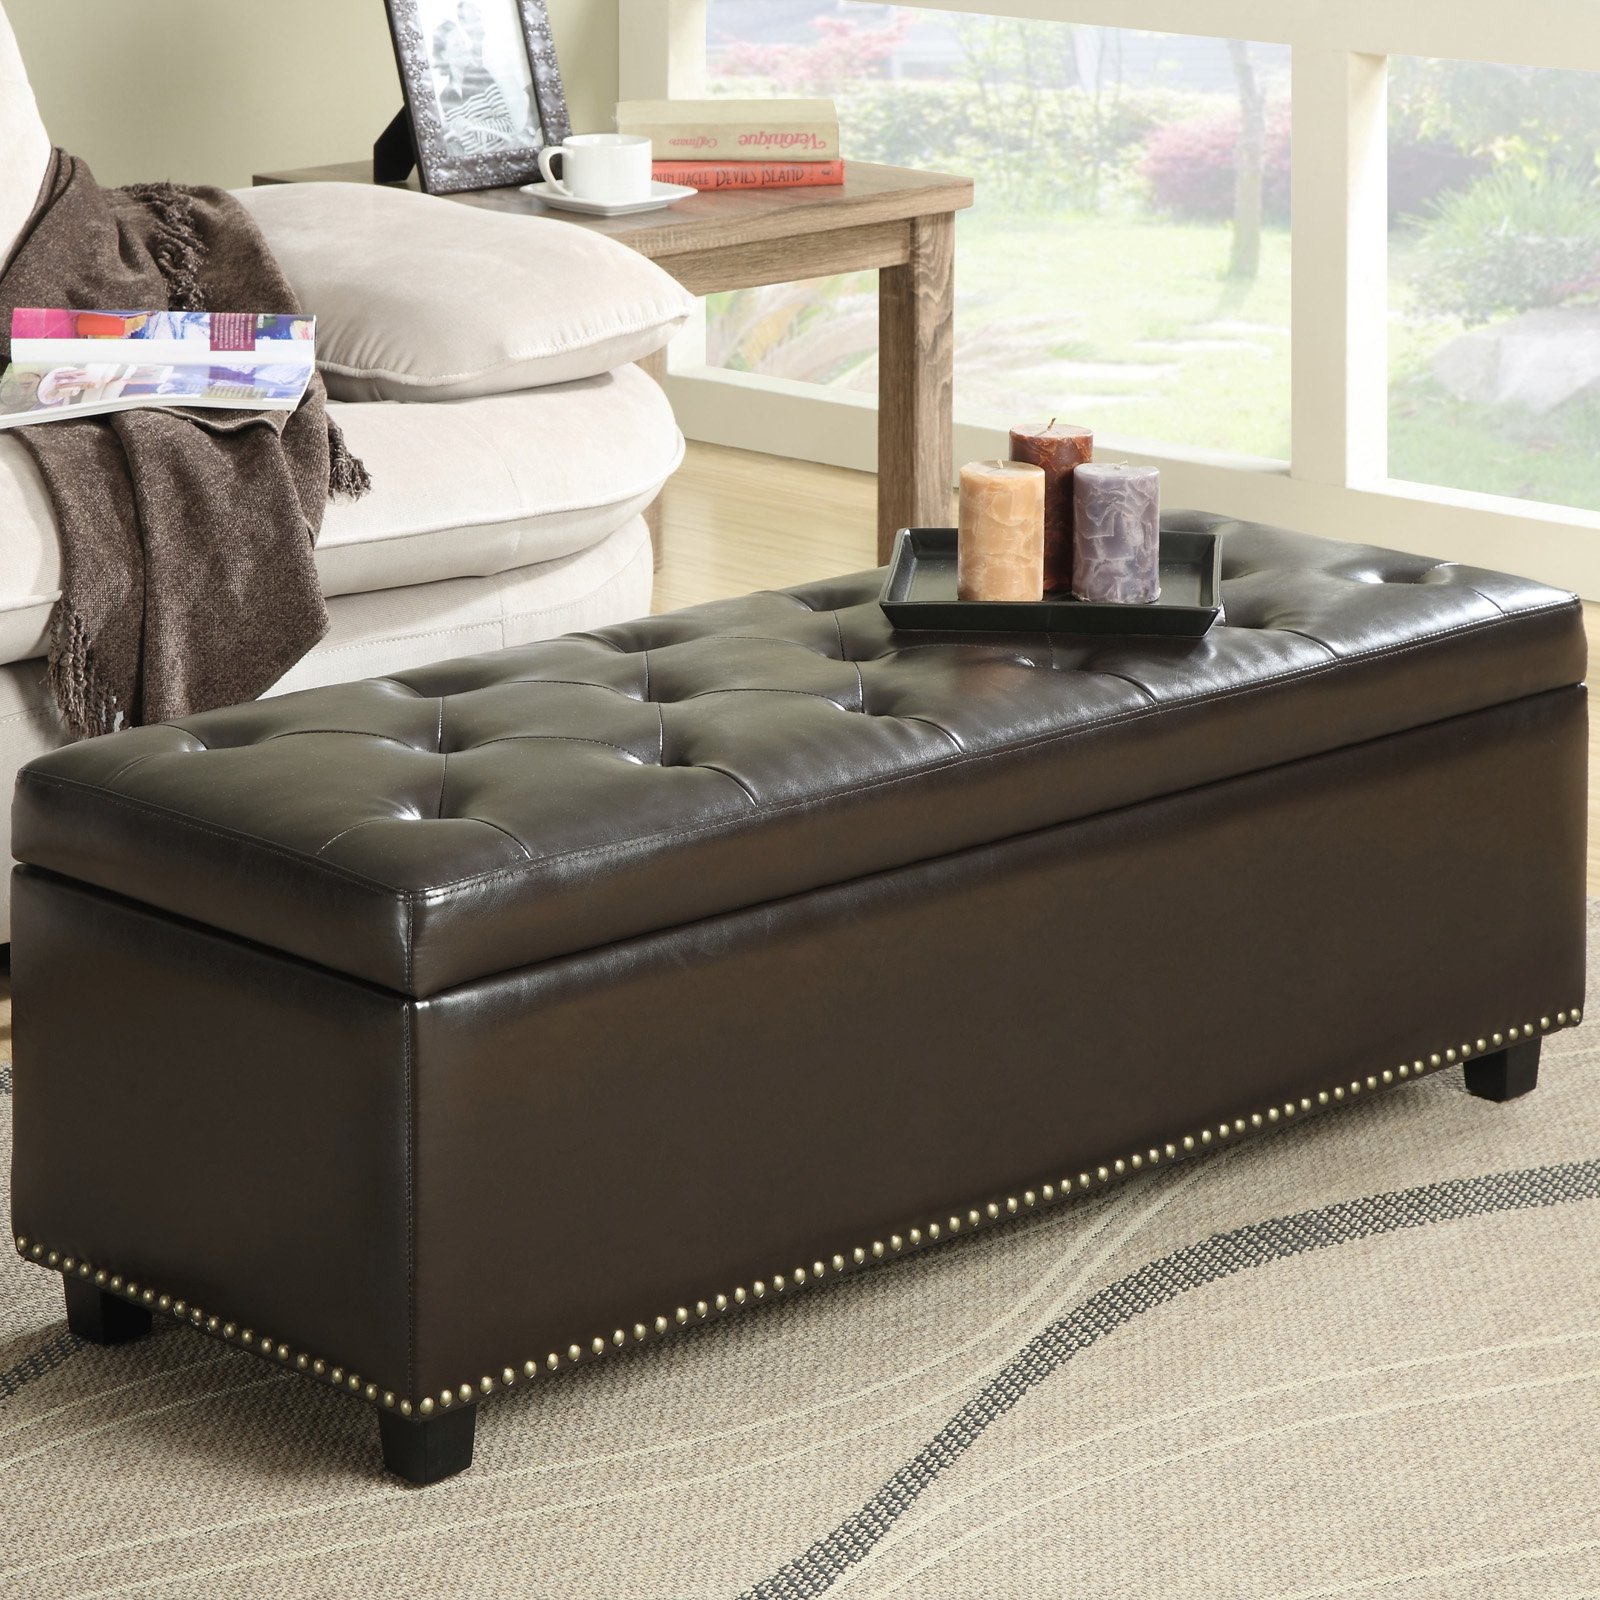 Tremendous Simpli Home Avalon Coffee Table Storage Ottoman With 4 Serving Trays Lamtechconsult Wood Chair Design Ideas Lamtechconsultcom